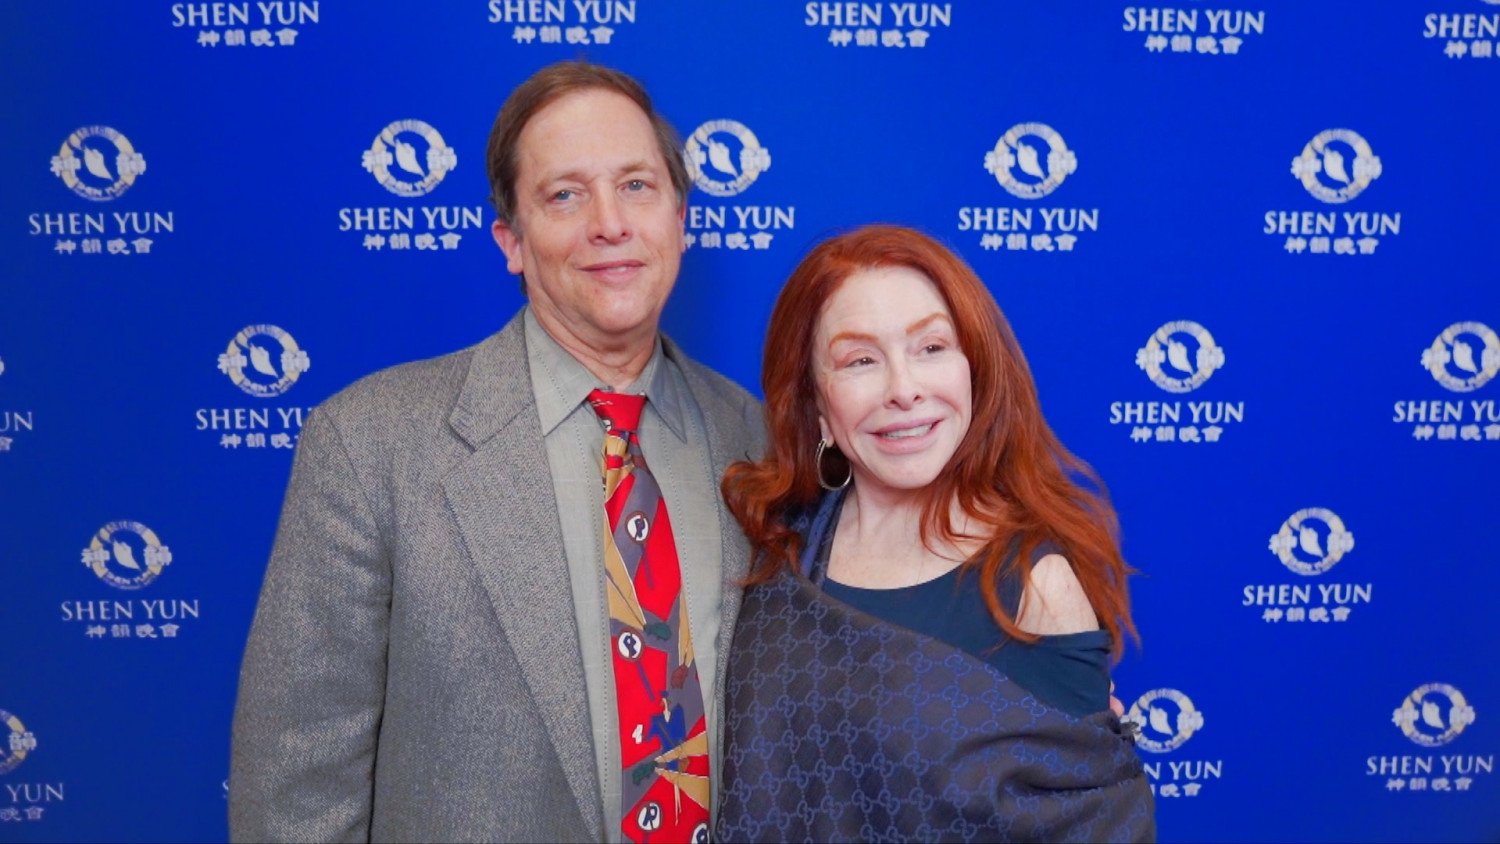 Shen Yun Transcended Us to a Higher Spiritual Place, Says Hollywood Designer